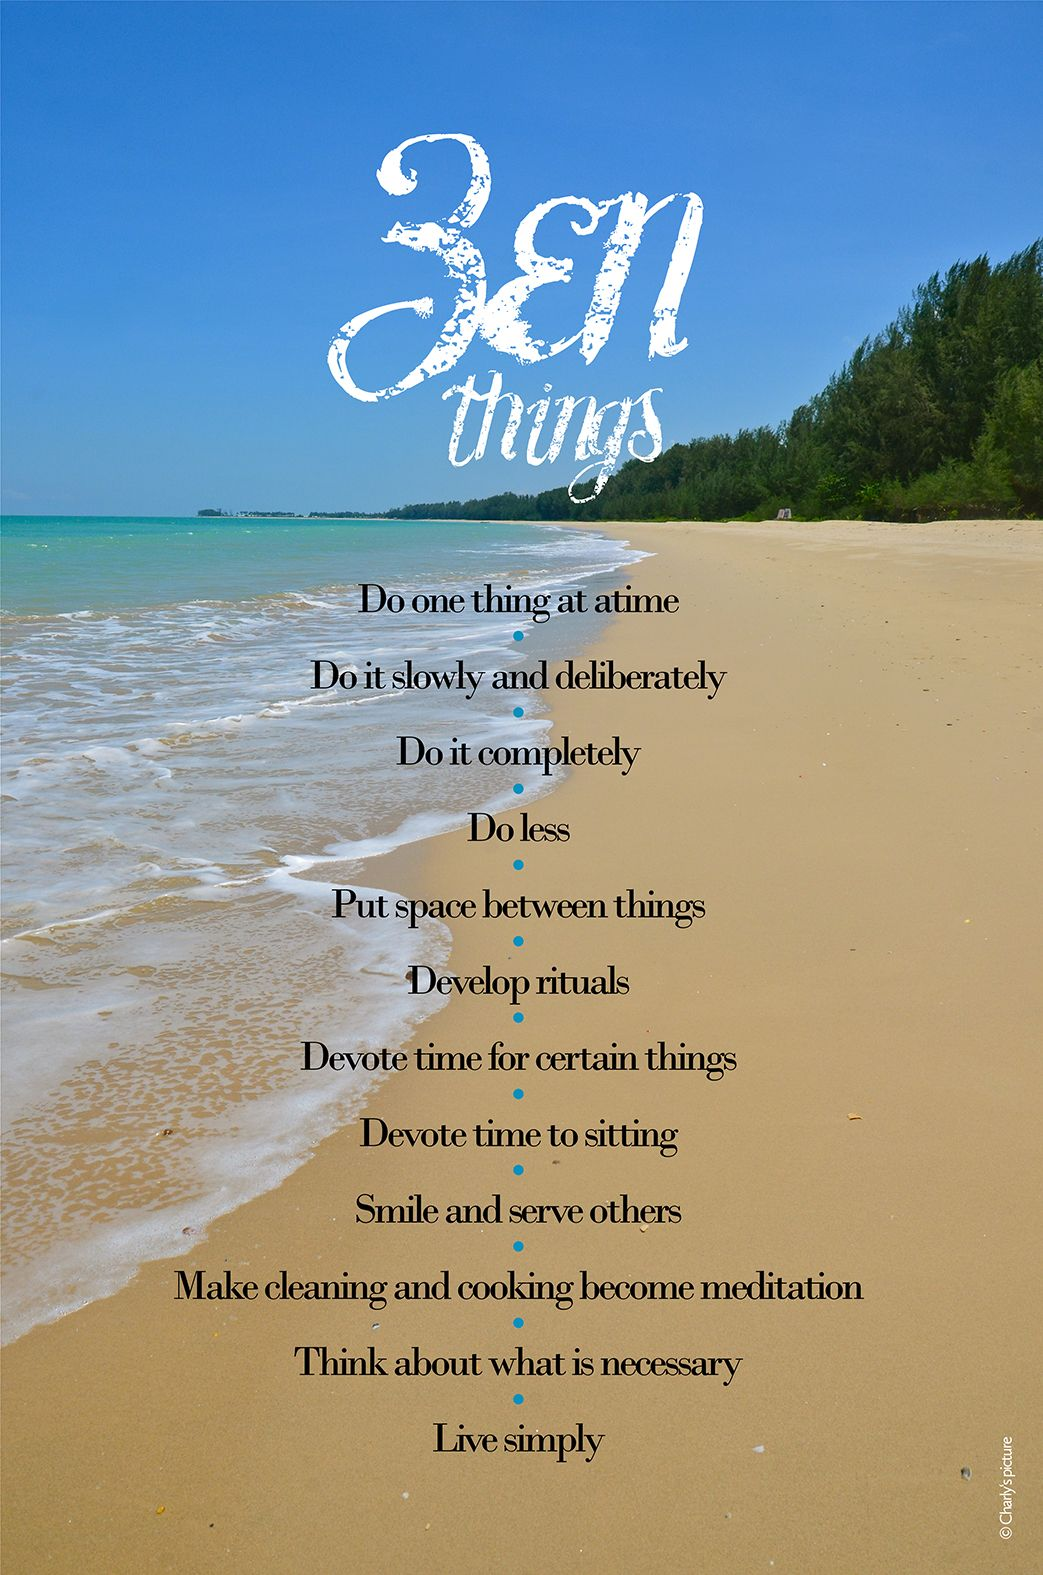 Inspirational zen quotes, a lovely beach in Phuket, Thailand and a deep blue sky. Smile and serve others. Live simply. Nothing more needed!